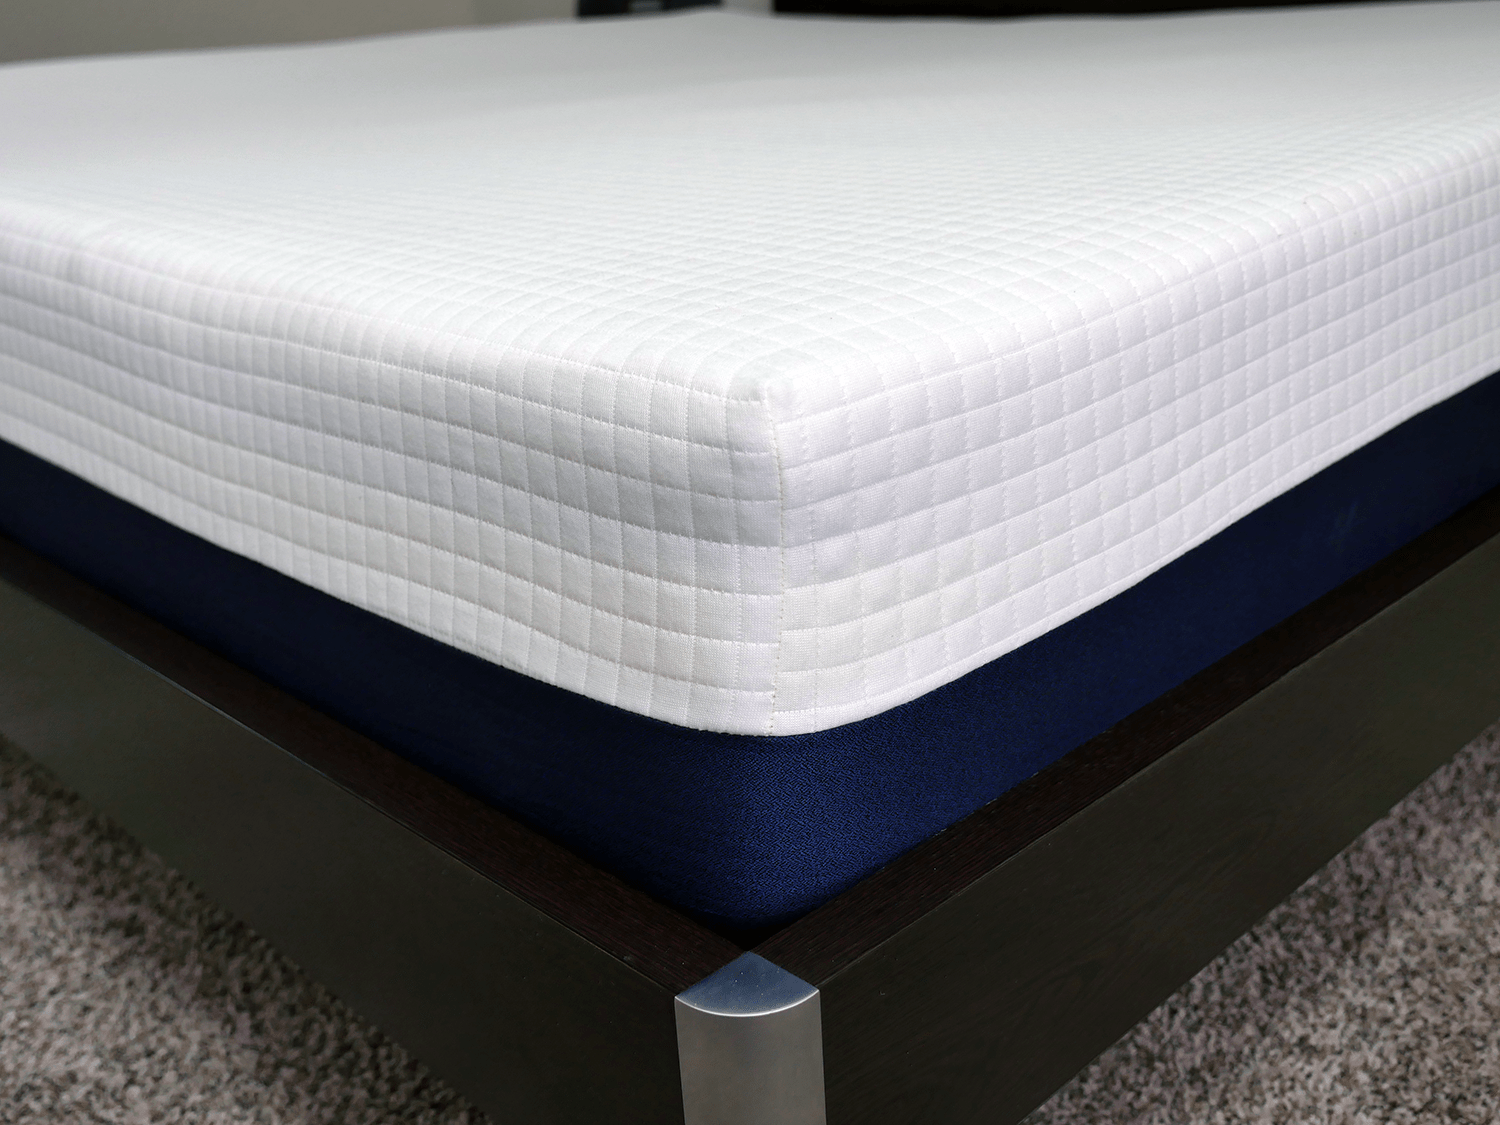 Helix matress cover